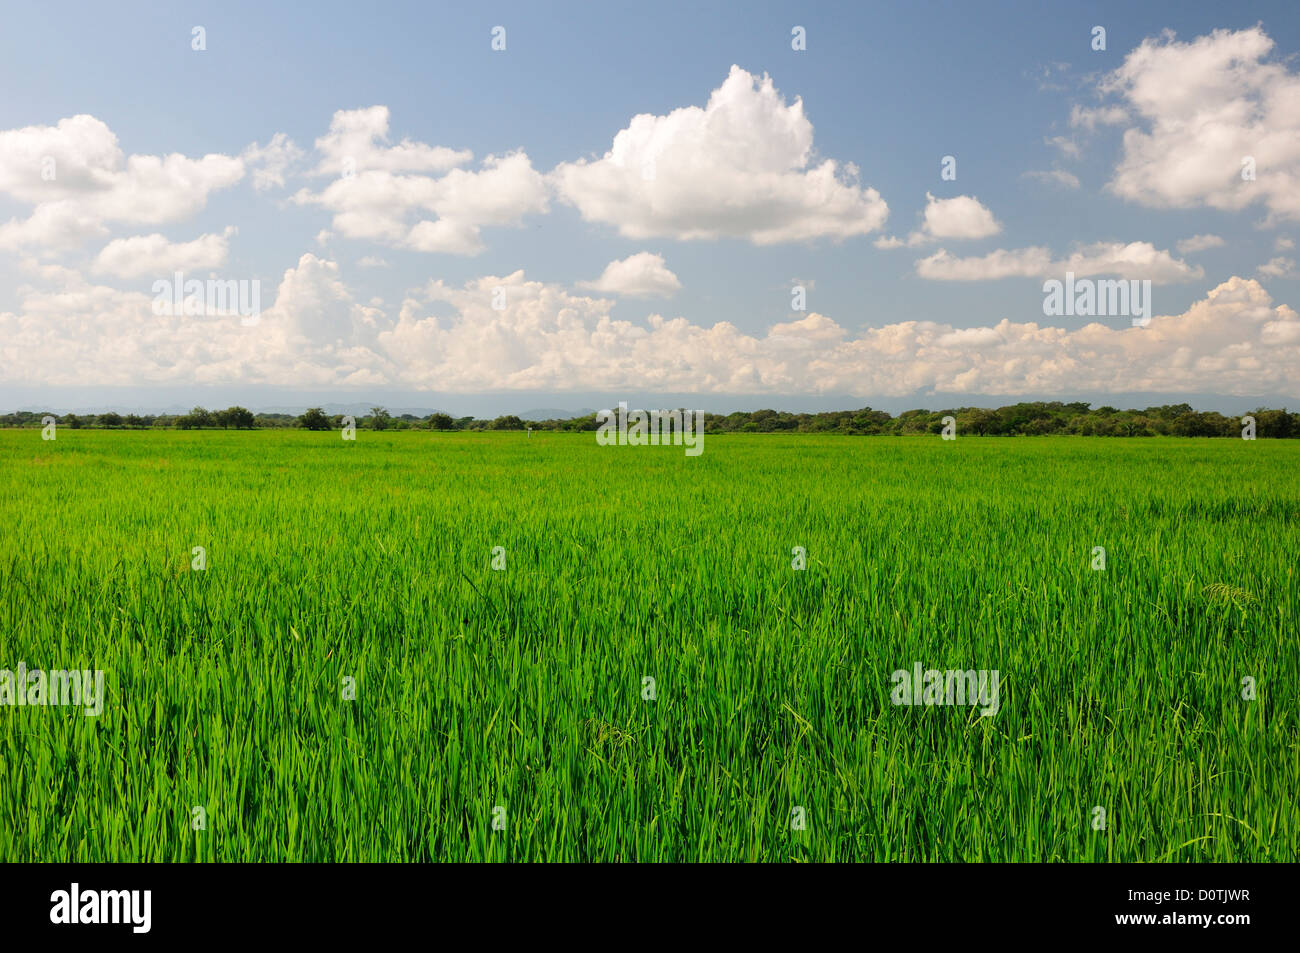 Rice, field, Saldana, Colombia, South America, green, agriculture - Stock Image